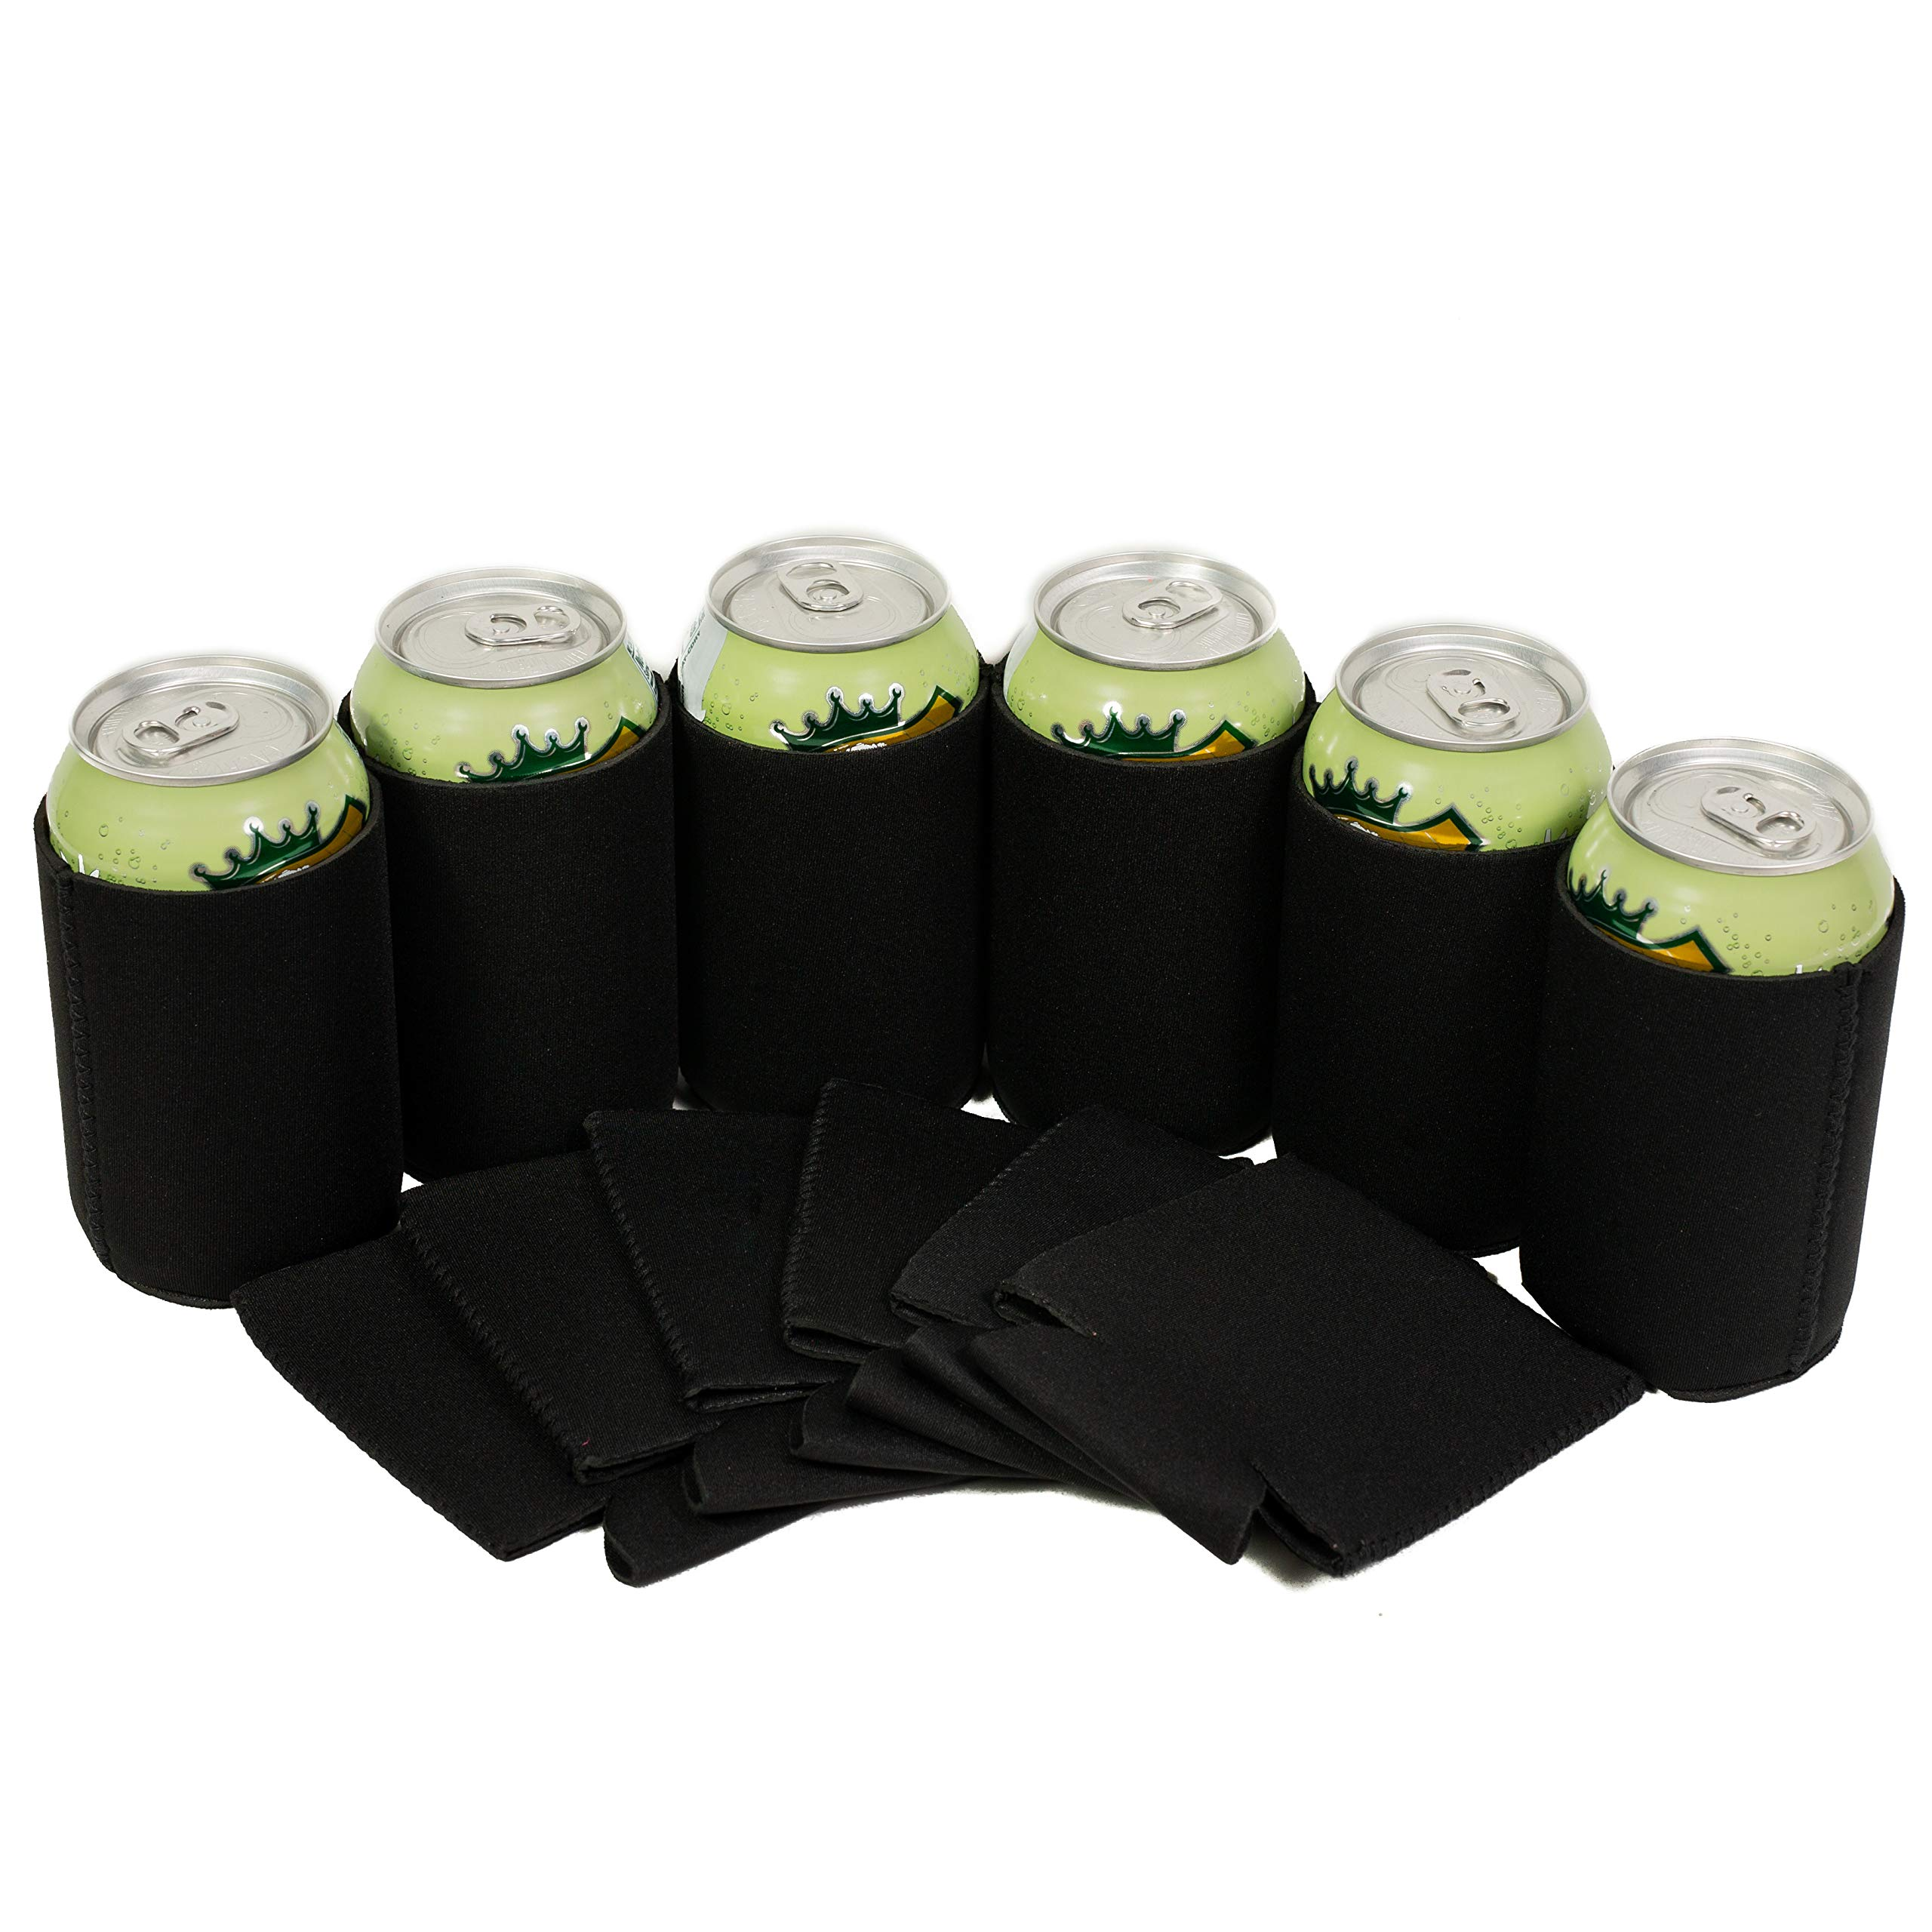 QualityPerfection 12 Black Can Cooler Sleeve - Collapsible Blank Neoprene Coolie Economy Bulk Insulation with Stitches Perfect 4 Events,Custom DIY Projects Variety of Colors